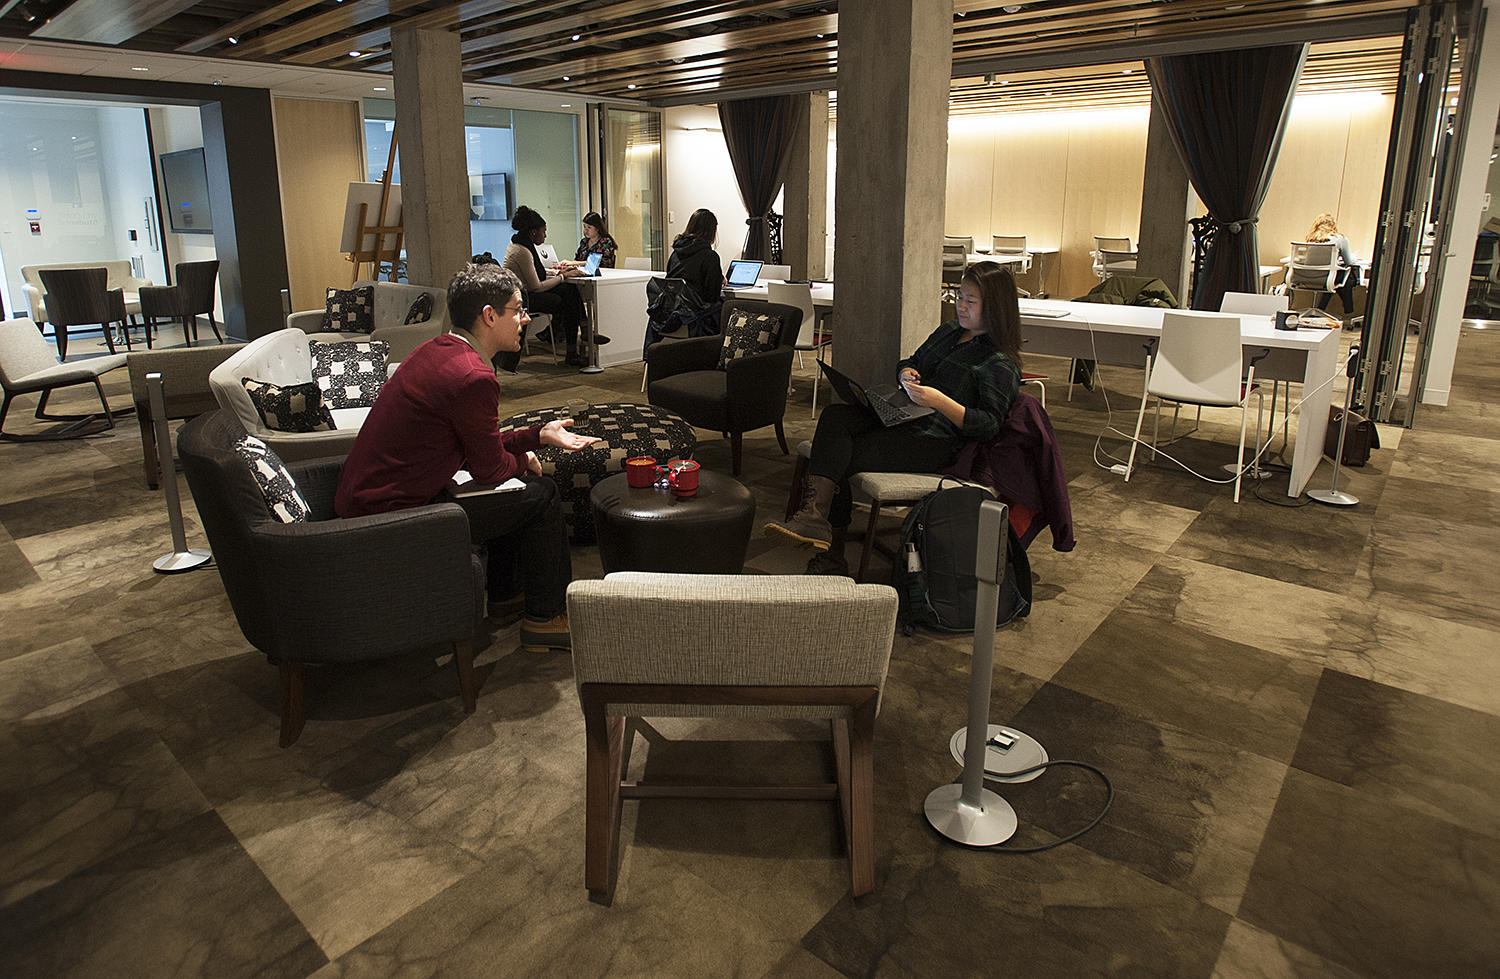 Students settle into the new Student Oasis